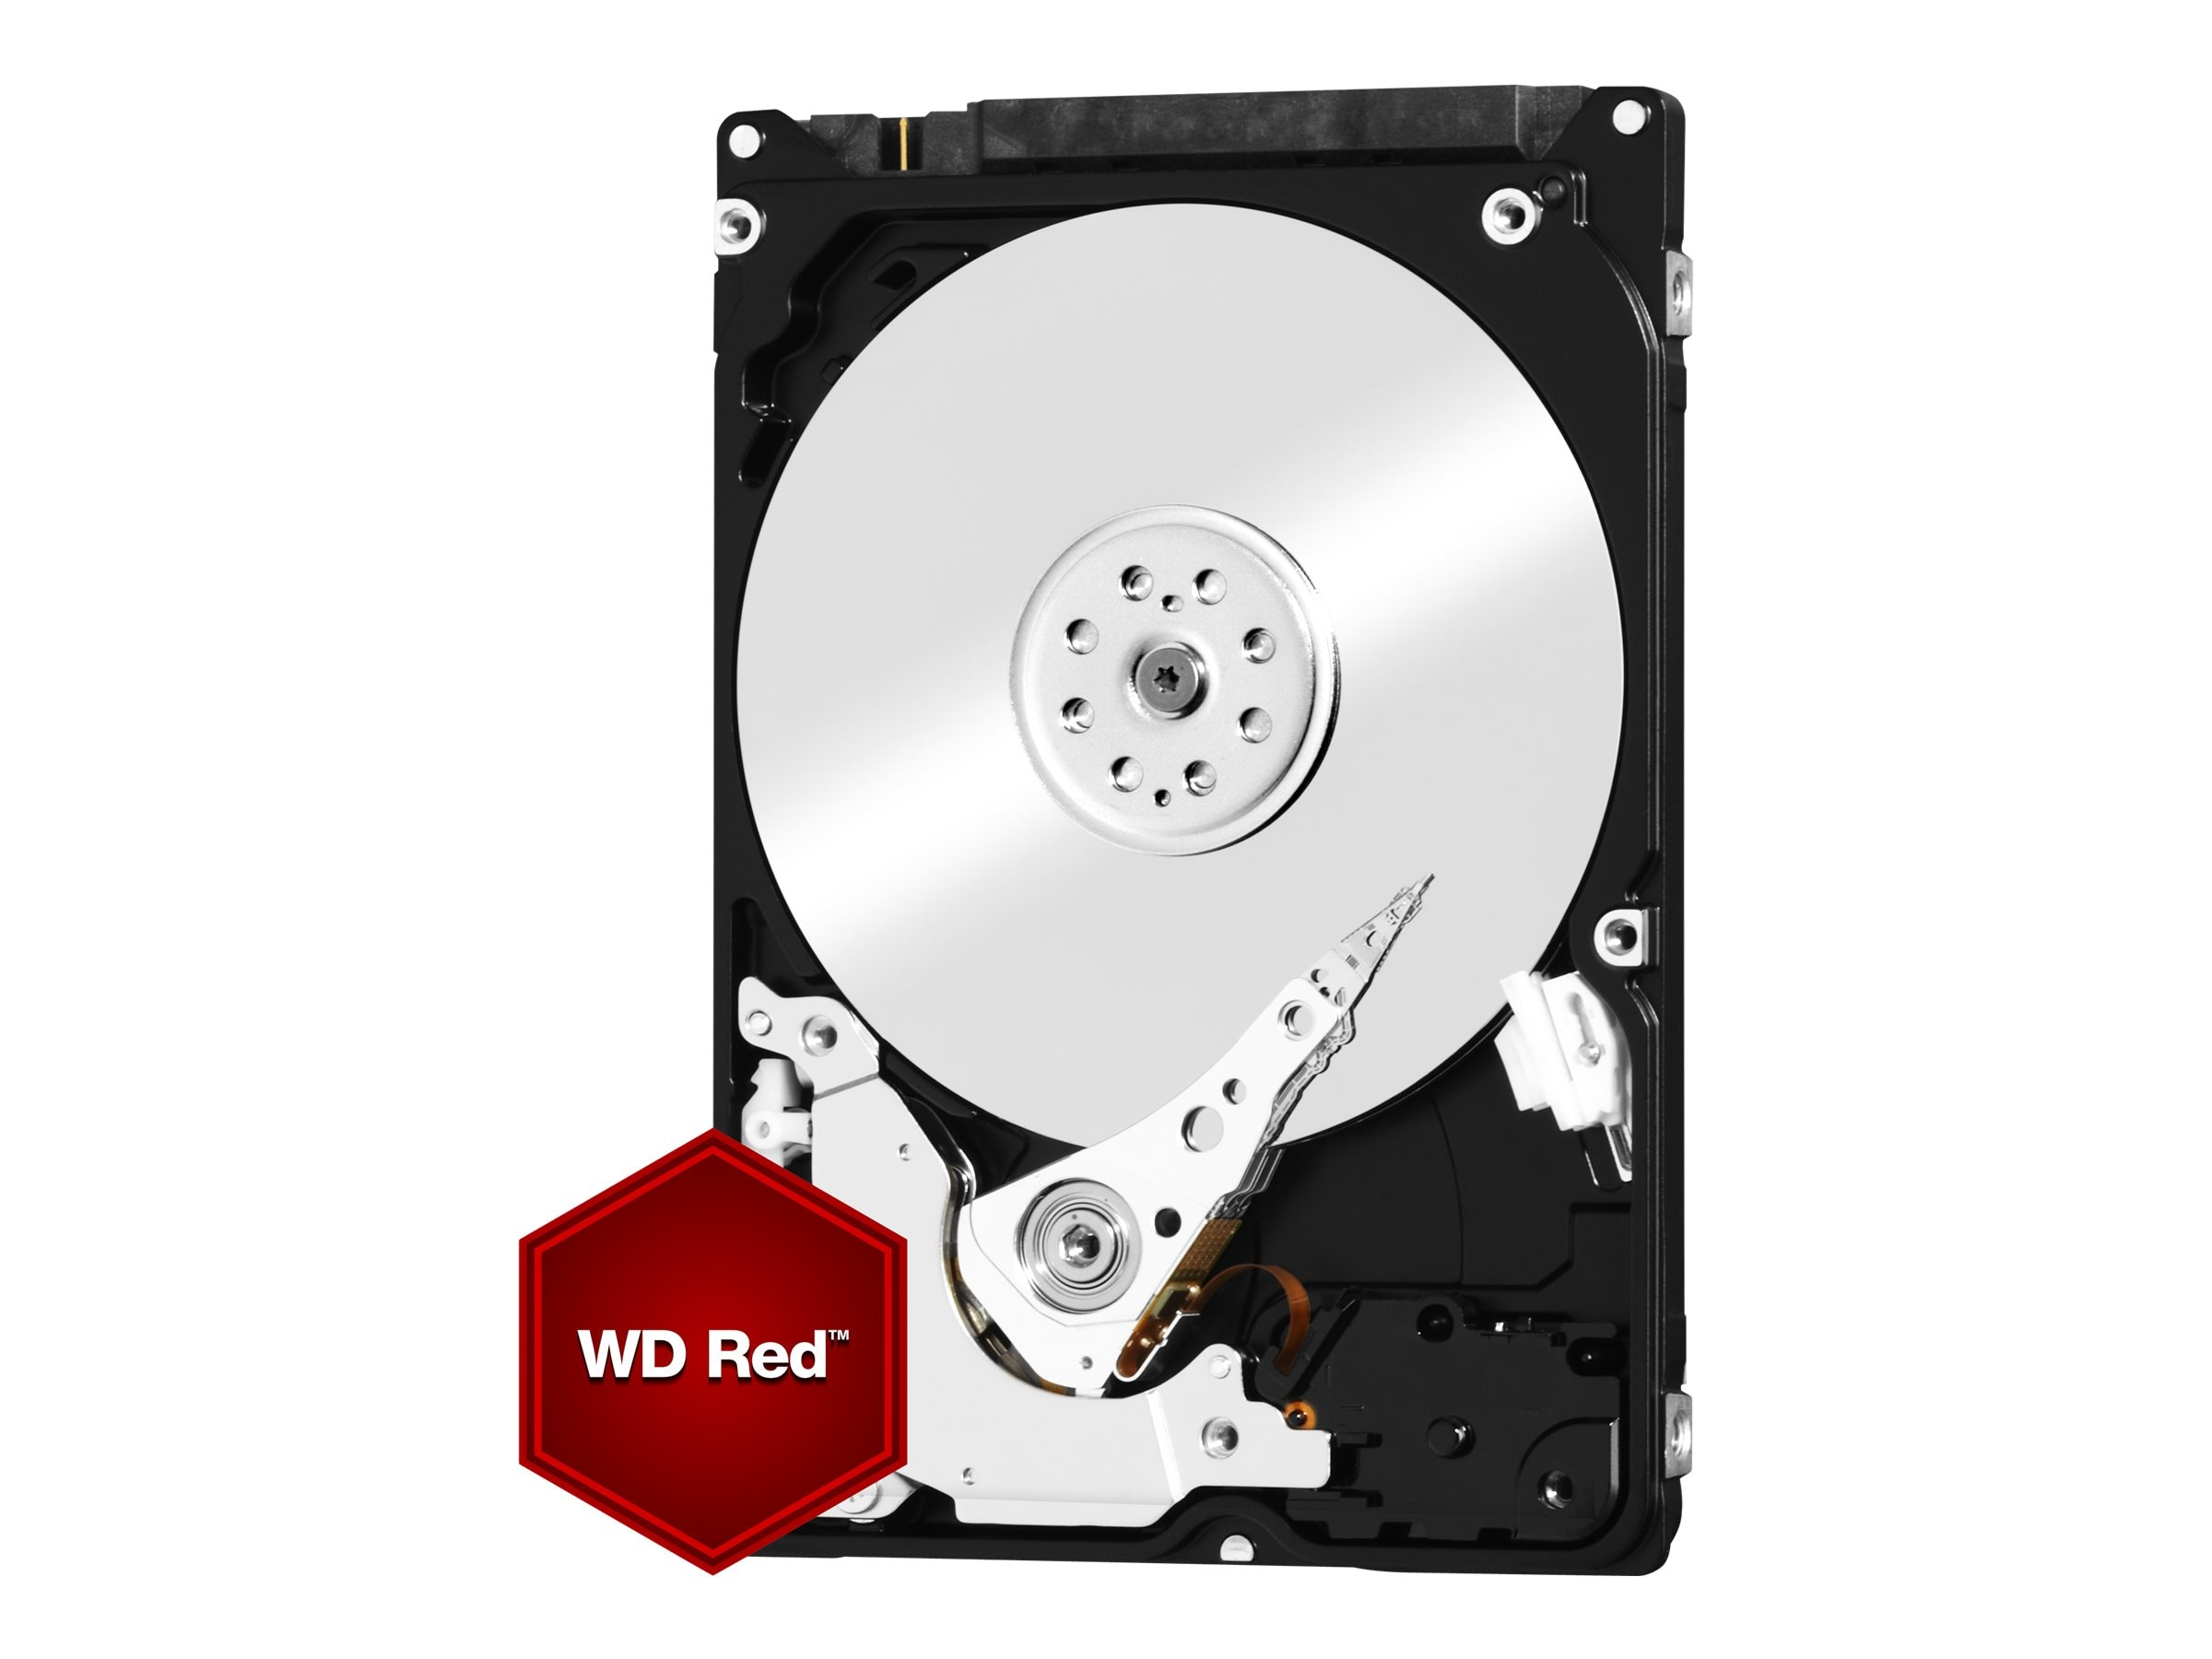 Open Box WD 750GB WD Red SATA 6Gb s 2.5 Internal NAS Hard Drives (50-pack)